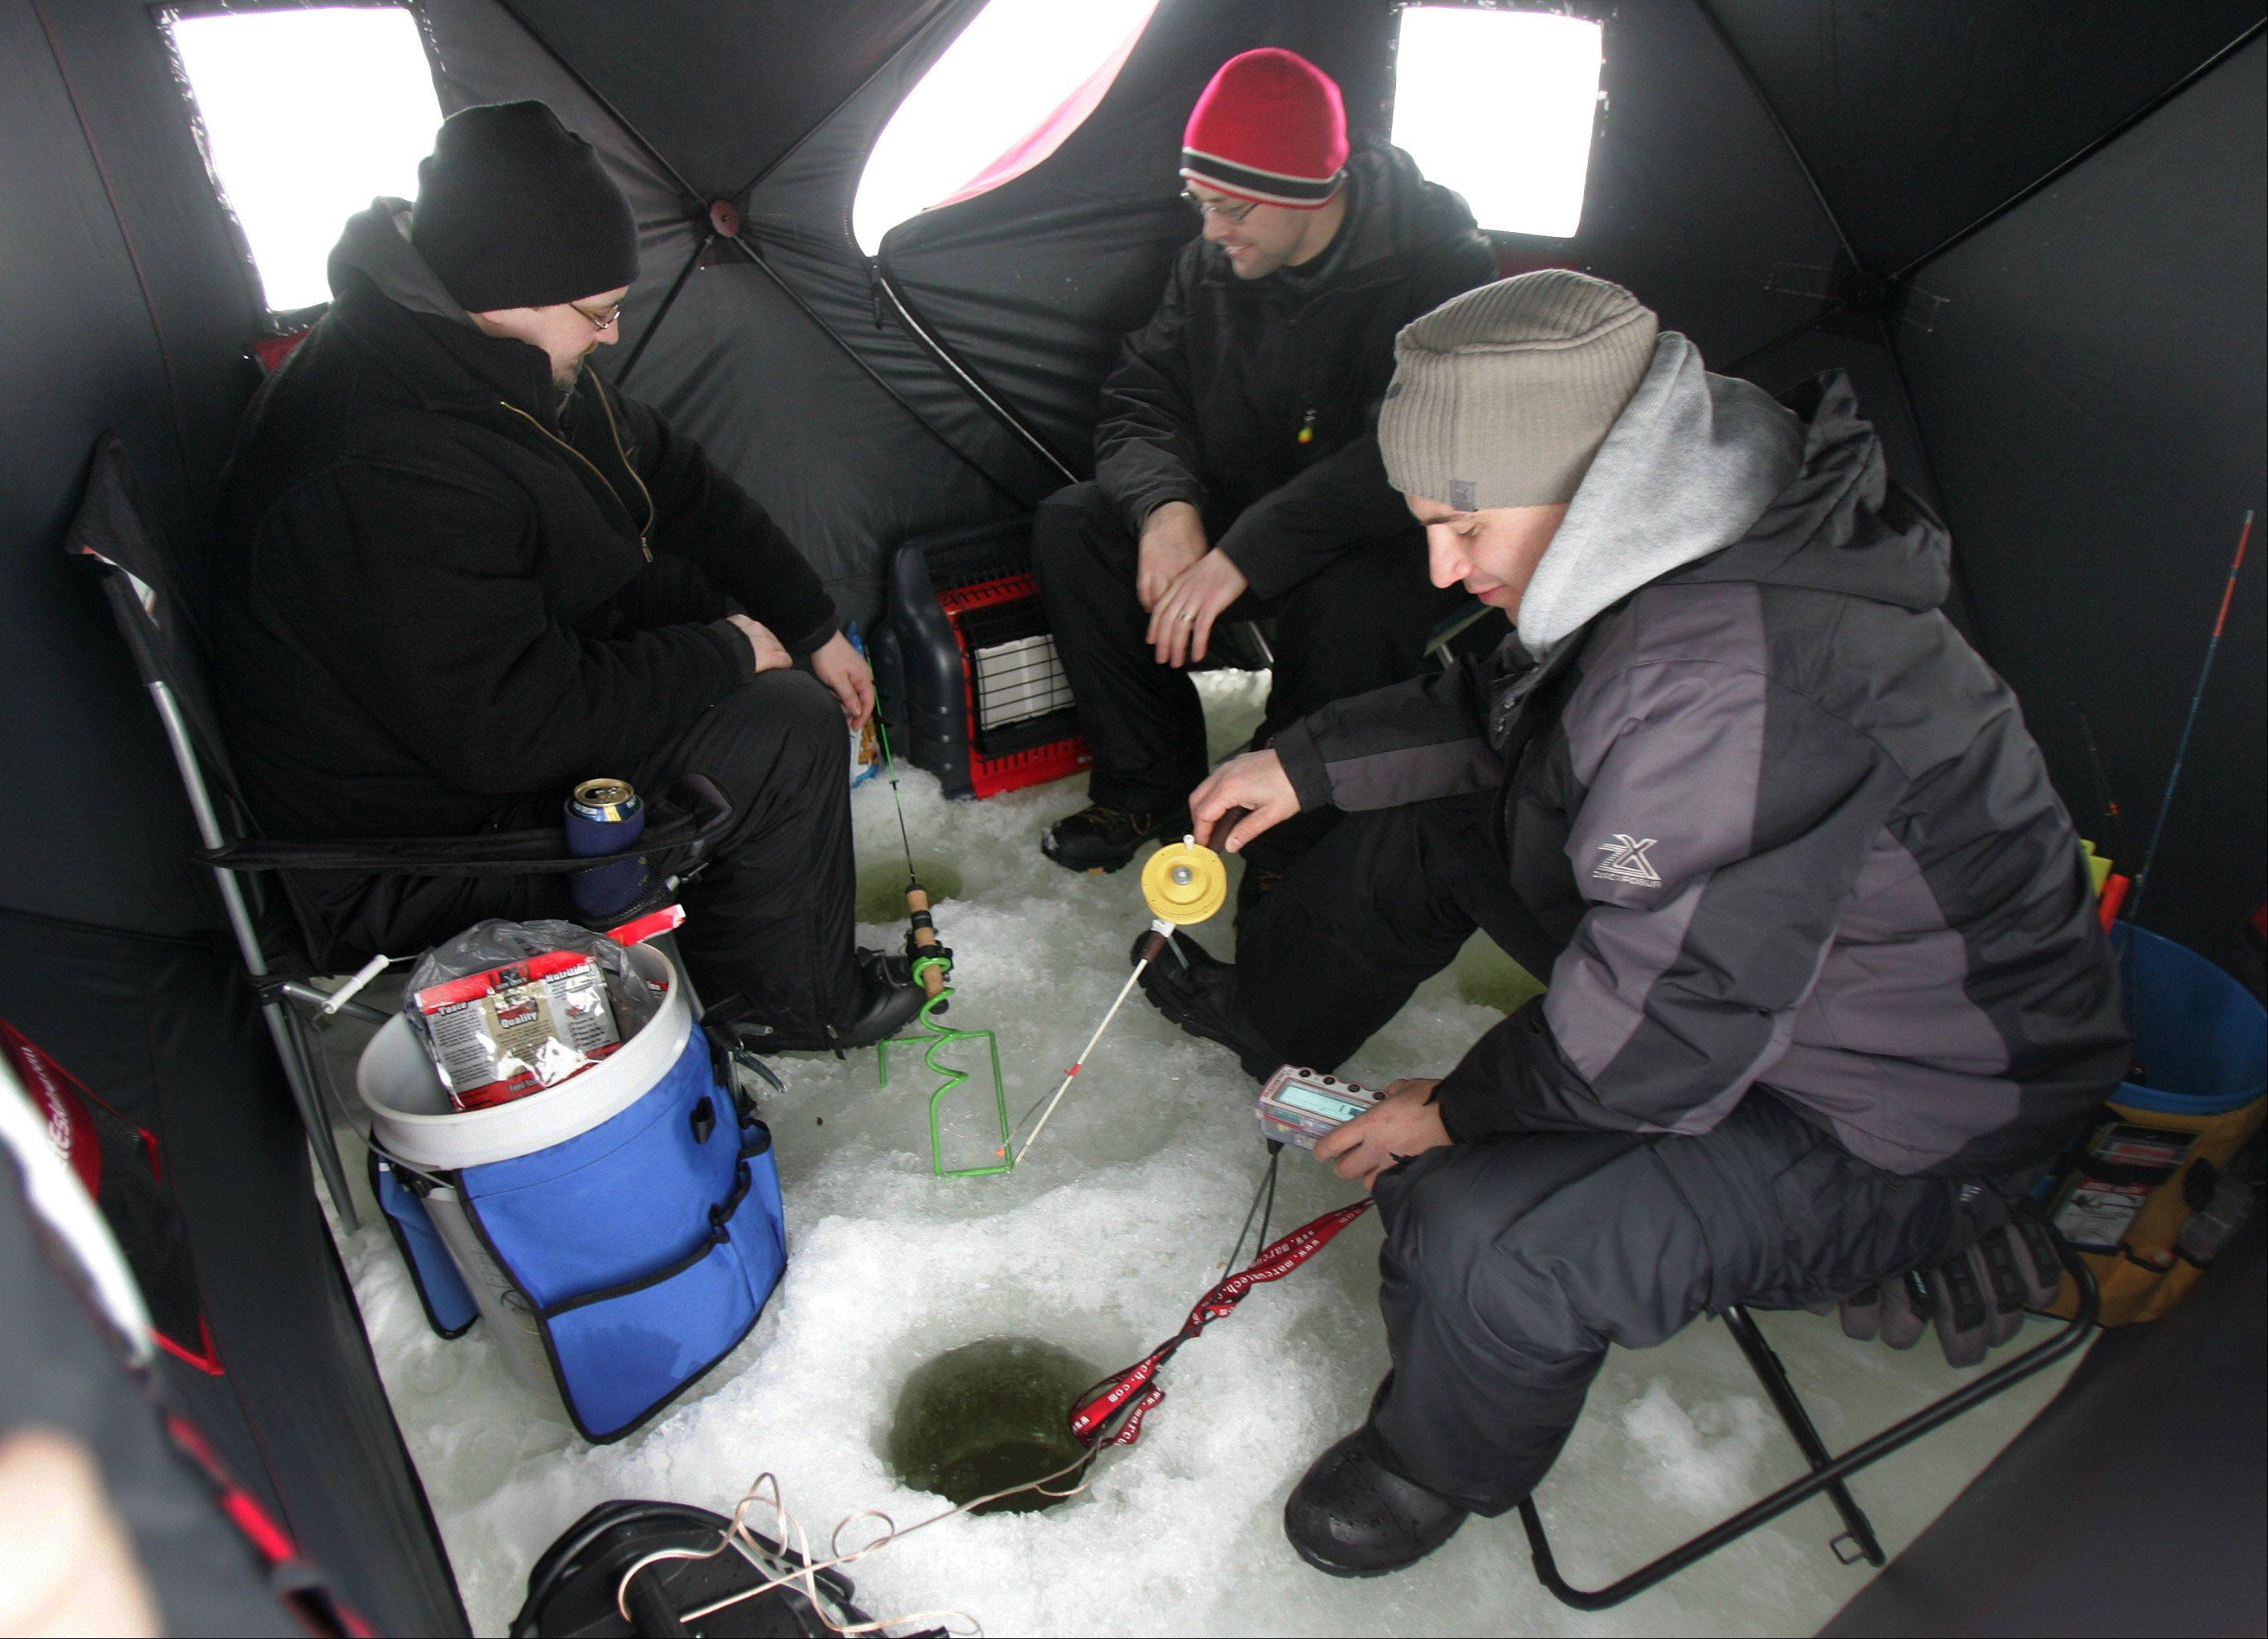 Matt Dee, of Grayslake, right, Joe Mazurkiewicz, of Hainesville, and his brother Chris, of Naperville, sit inside an ice shelter as they ice fish during the 53rd Annual Chain O'Lakes Ice Fishin' Derby and Winter Festival Sunday in Antioch. The Northern Illinois Conservation Club sponsored the event that featured a fishing tournament, raffle drawing, food and children's games.